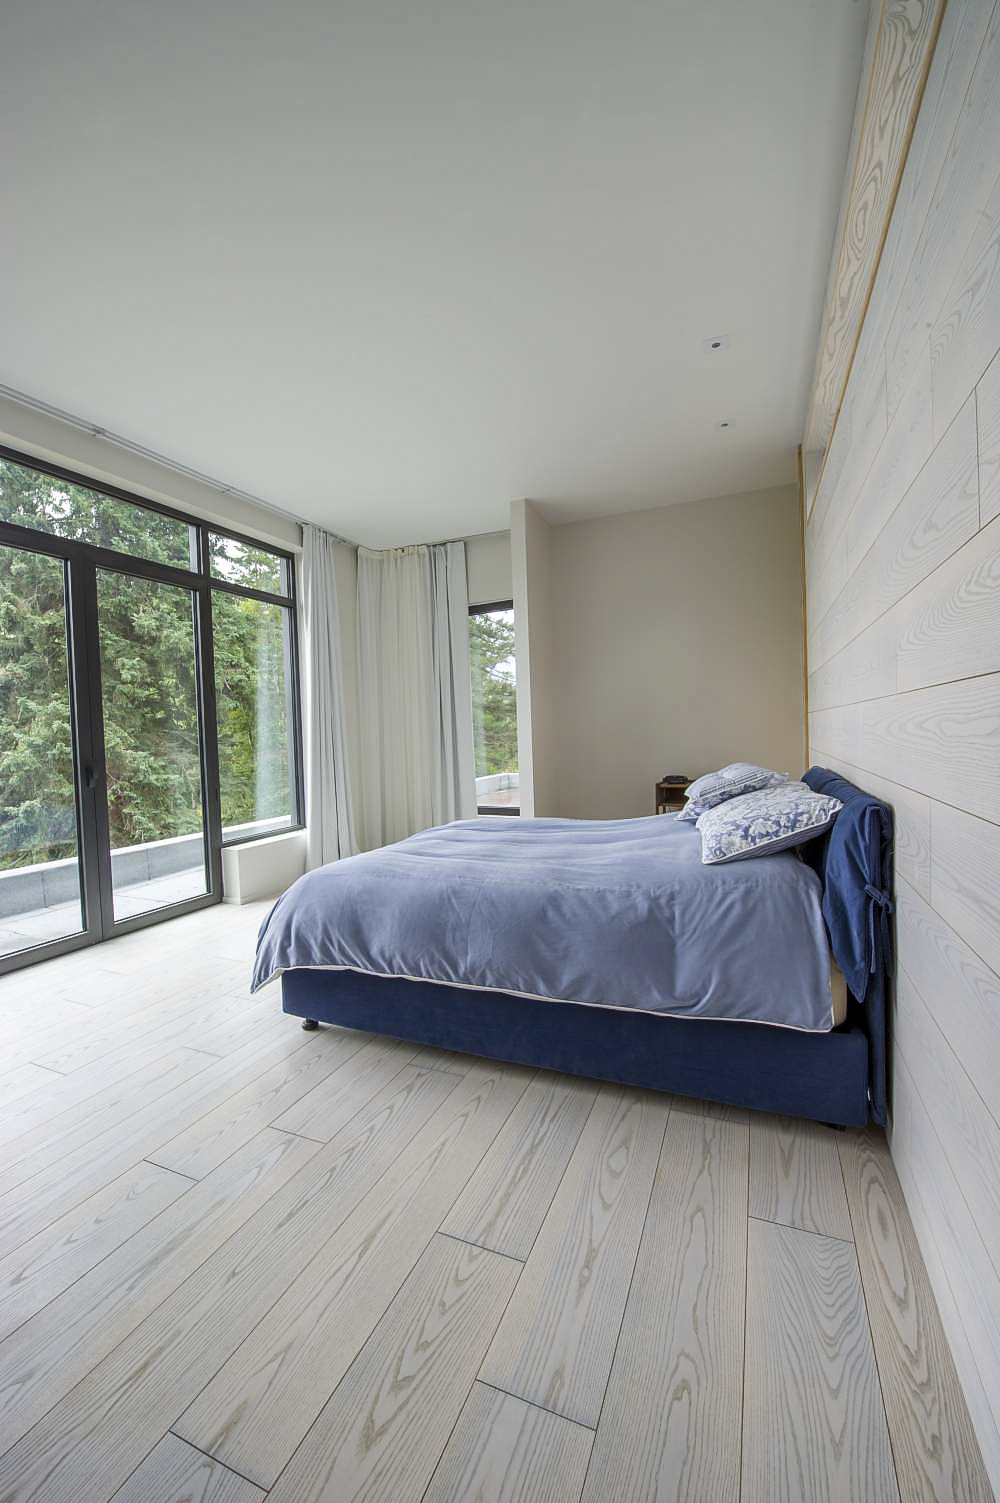 matte ash wide plank hardwood bedroom floor.jpg